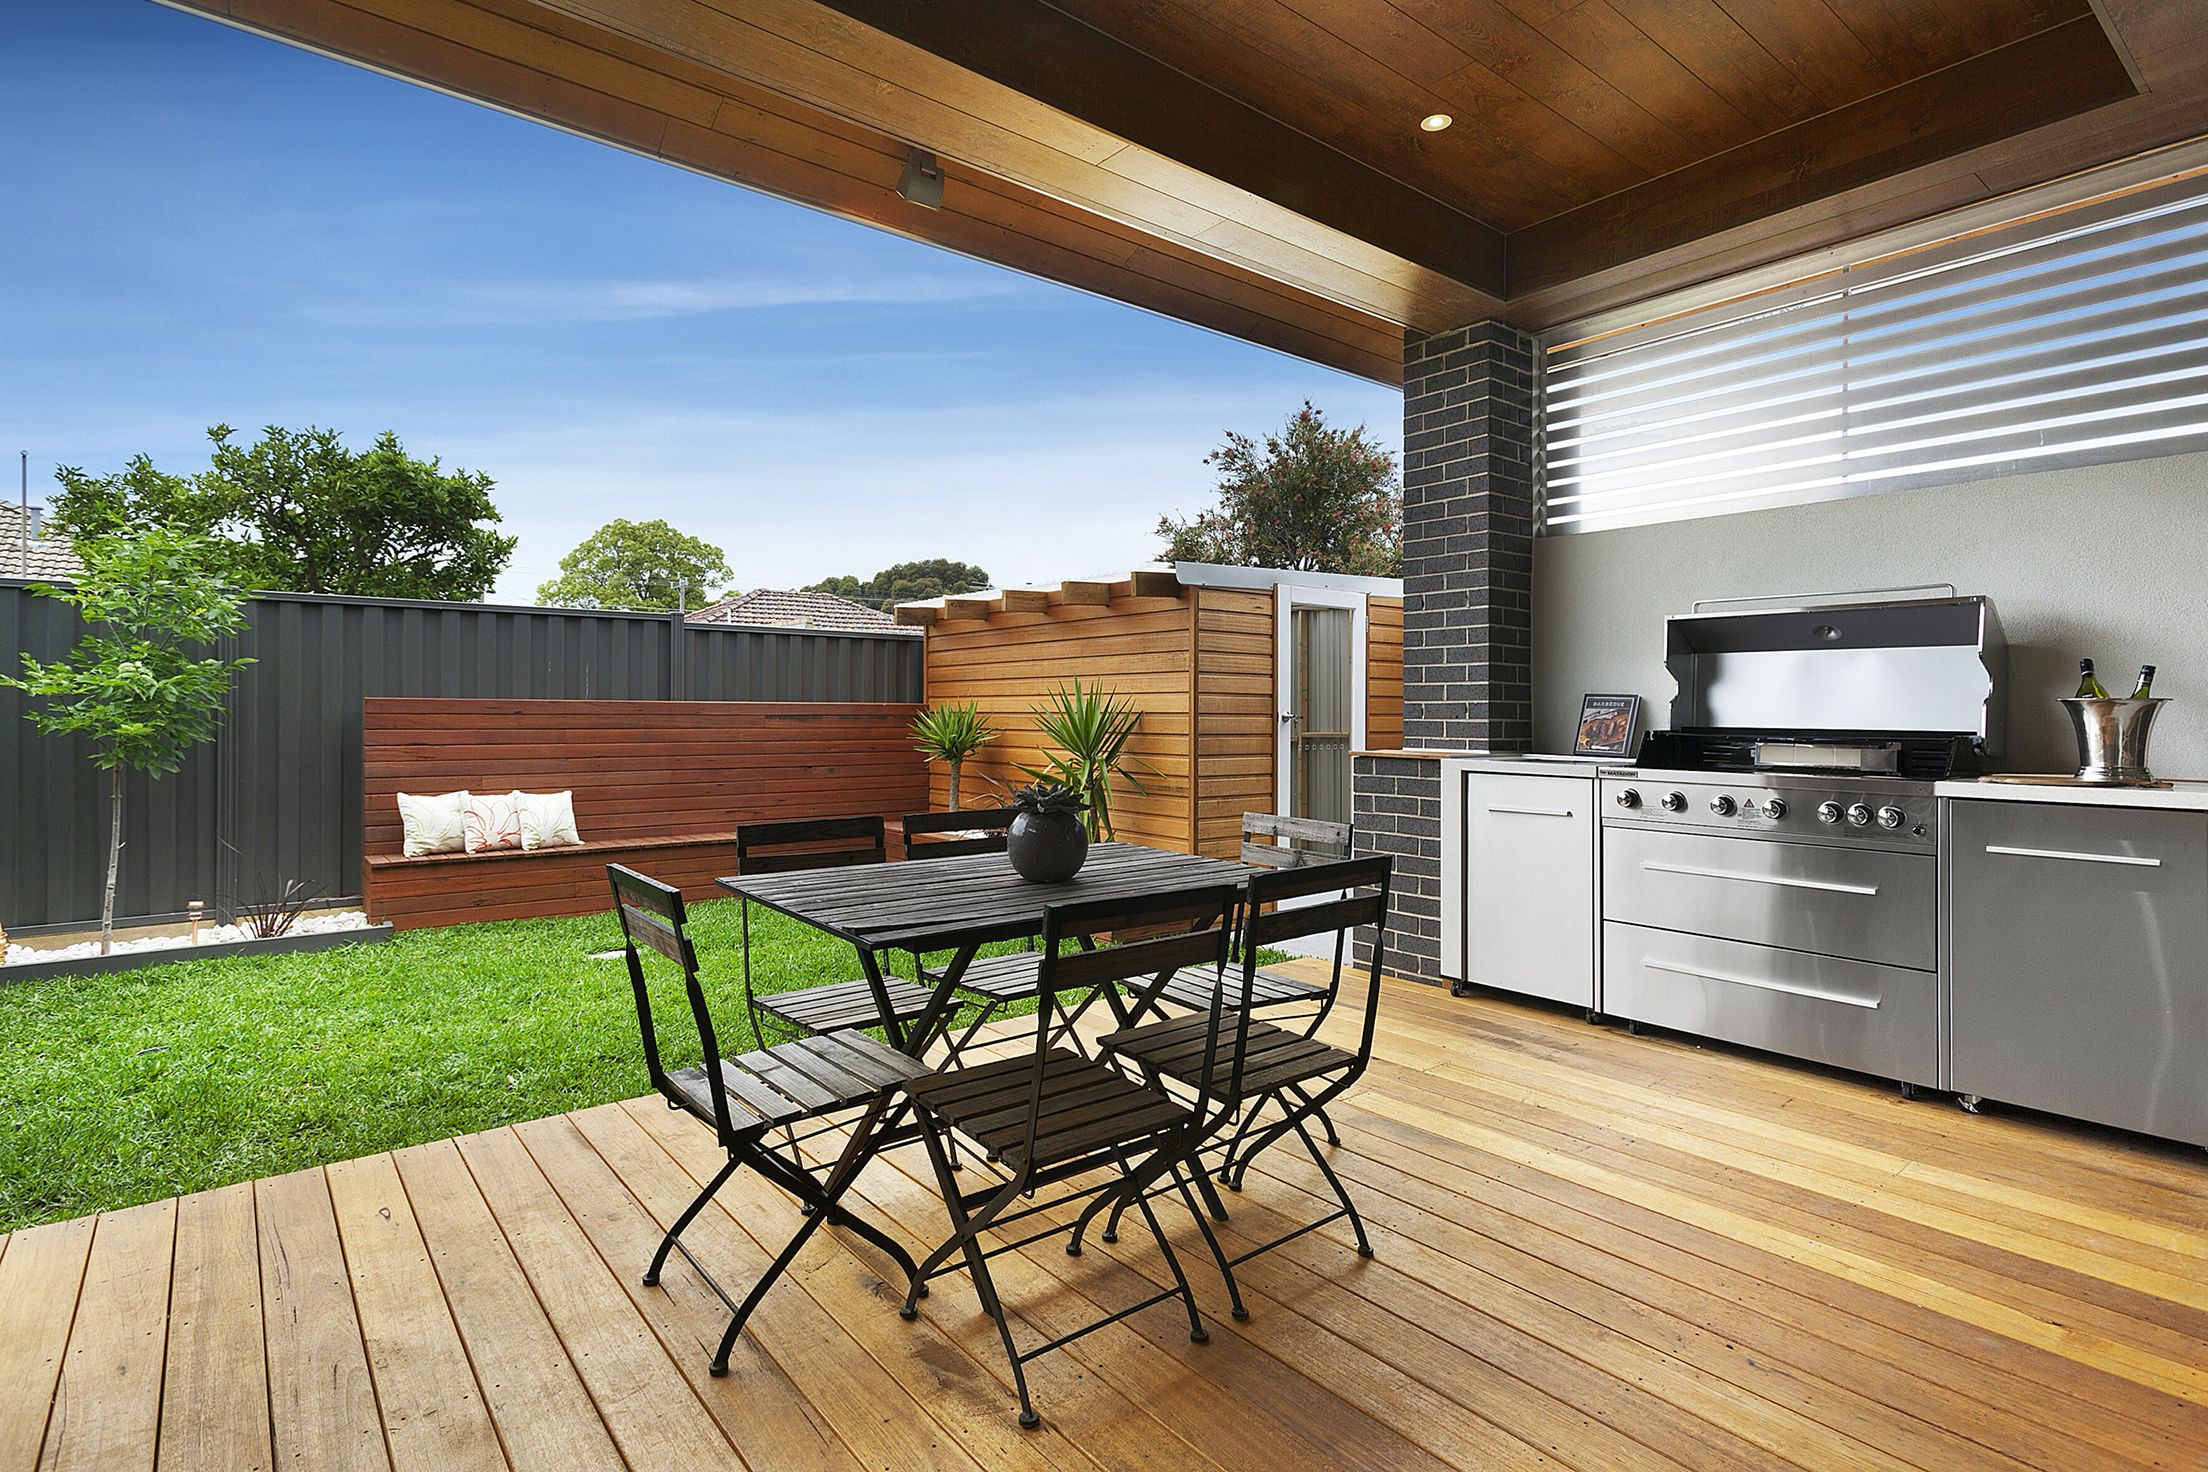 Modern alfresco backyard decking bbq built in small for Backyard built in bbq ideas